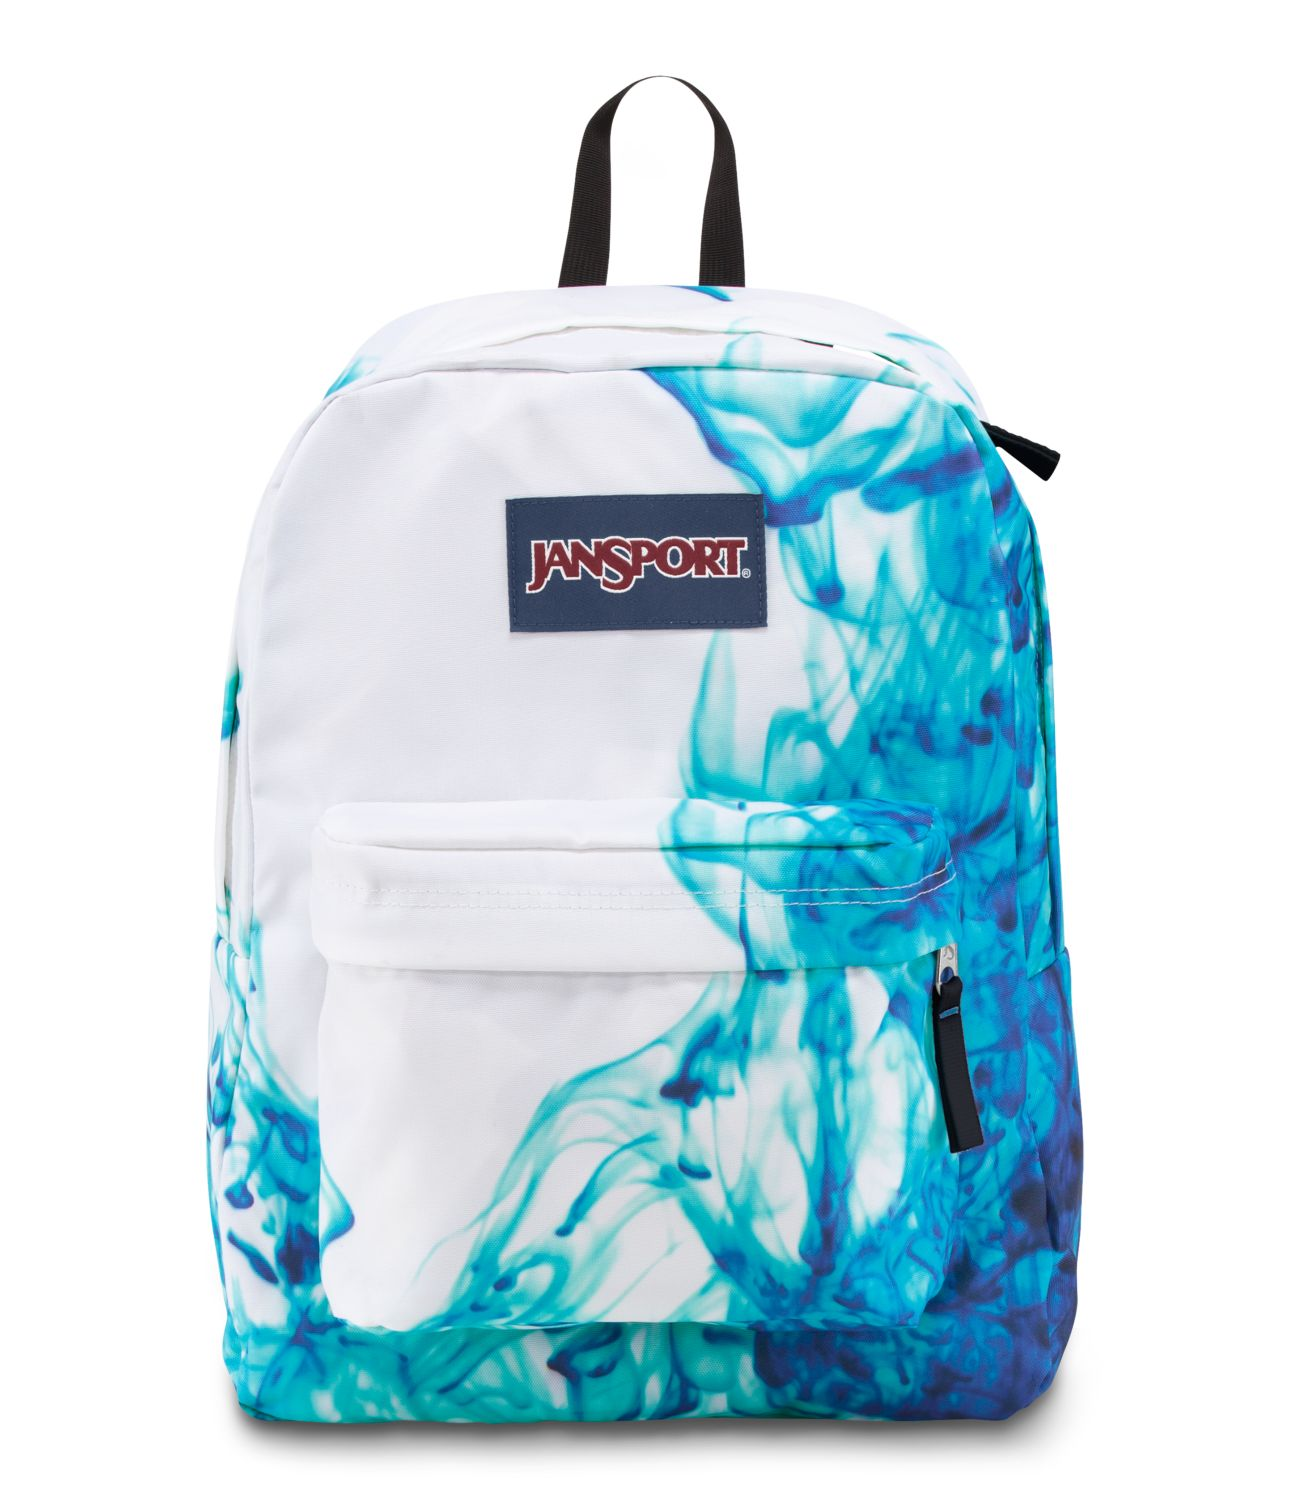 JanSport SuperBreak School Backpack - Multi/Blue Drip Dye